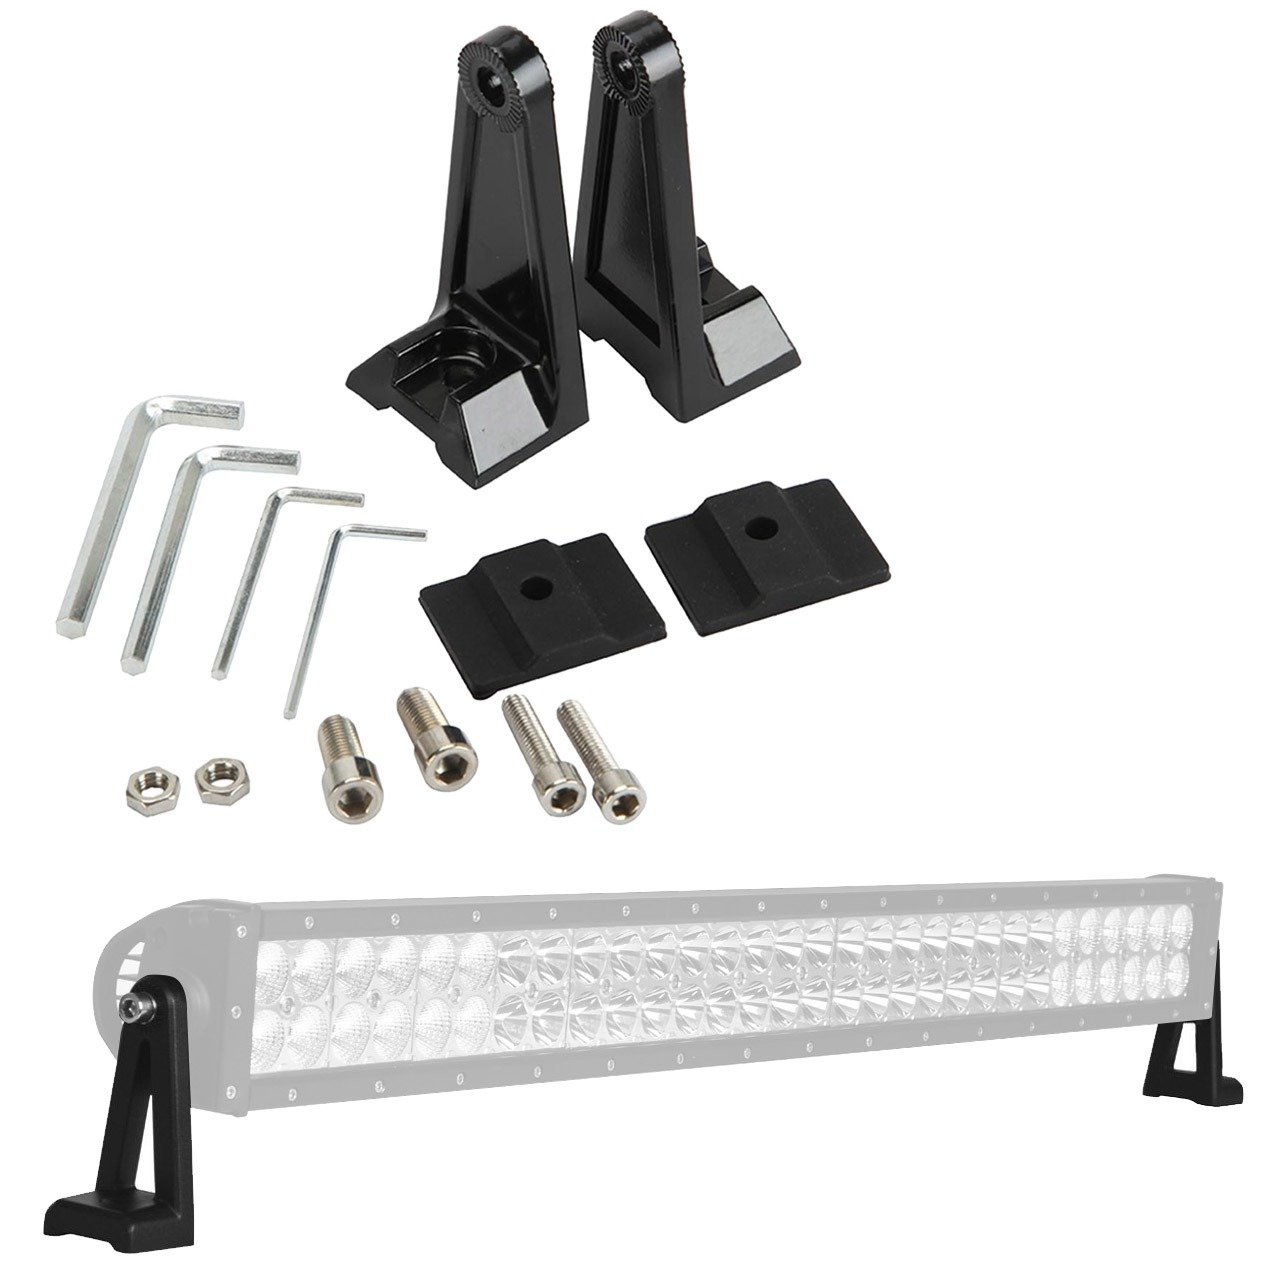 ALAVENTE Light Bar Side Brackets Universal Side Brackets Kit for Mounting Double Row LED Work Light Bar Mount Pair, Black